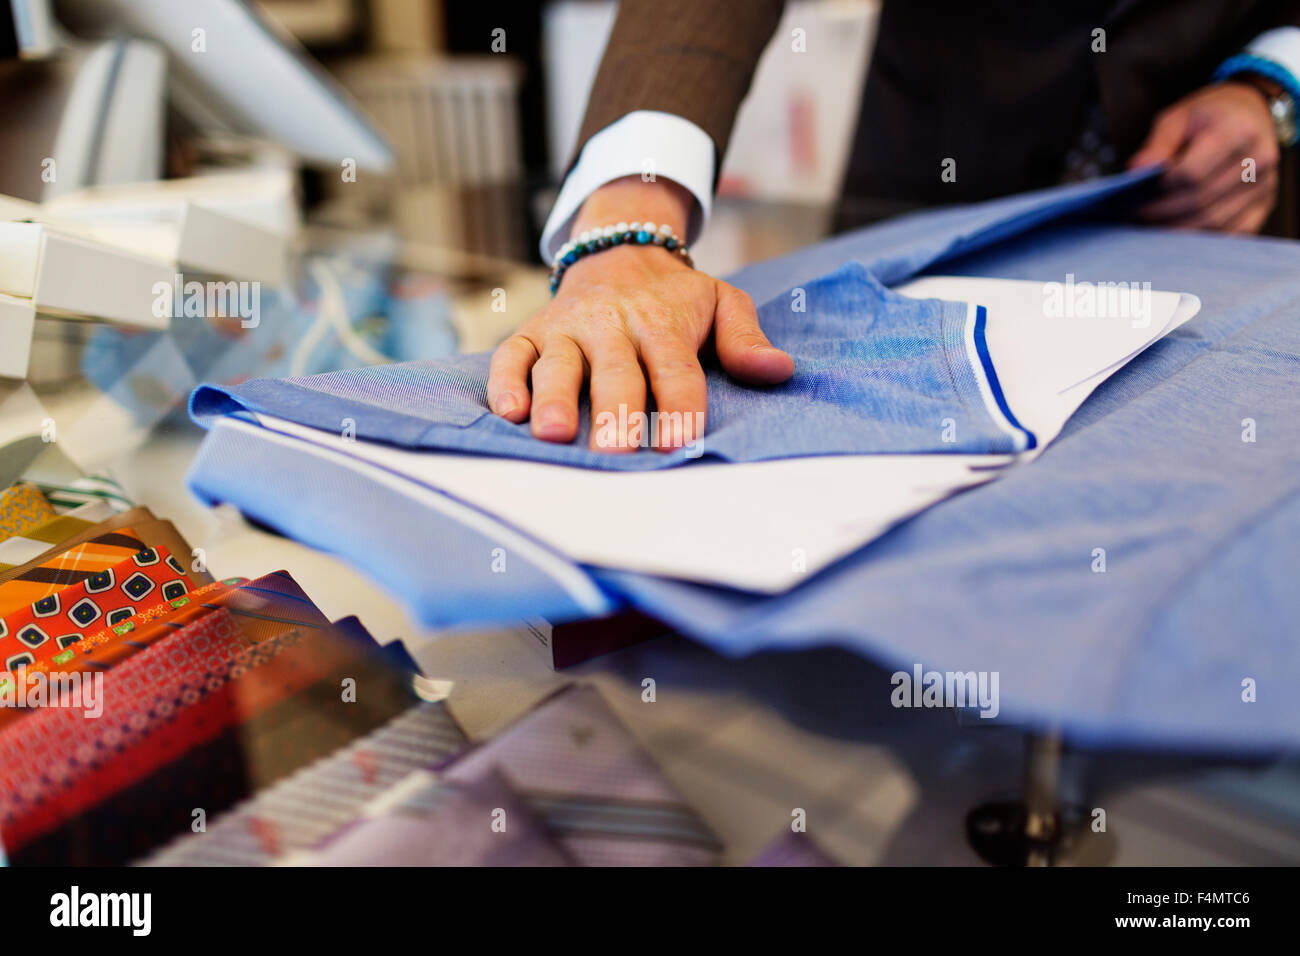 Sales clerk folding t-shirt on table in clothing showroom - Stock Image